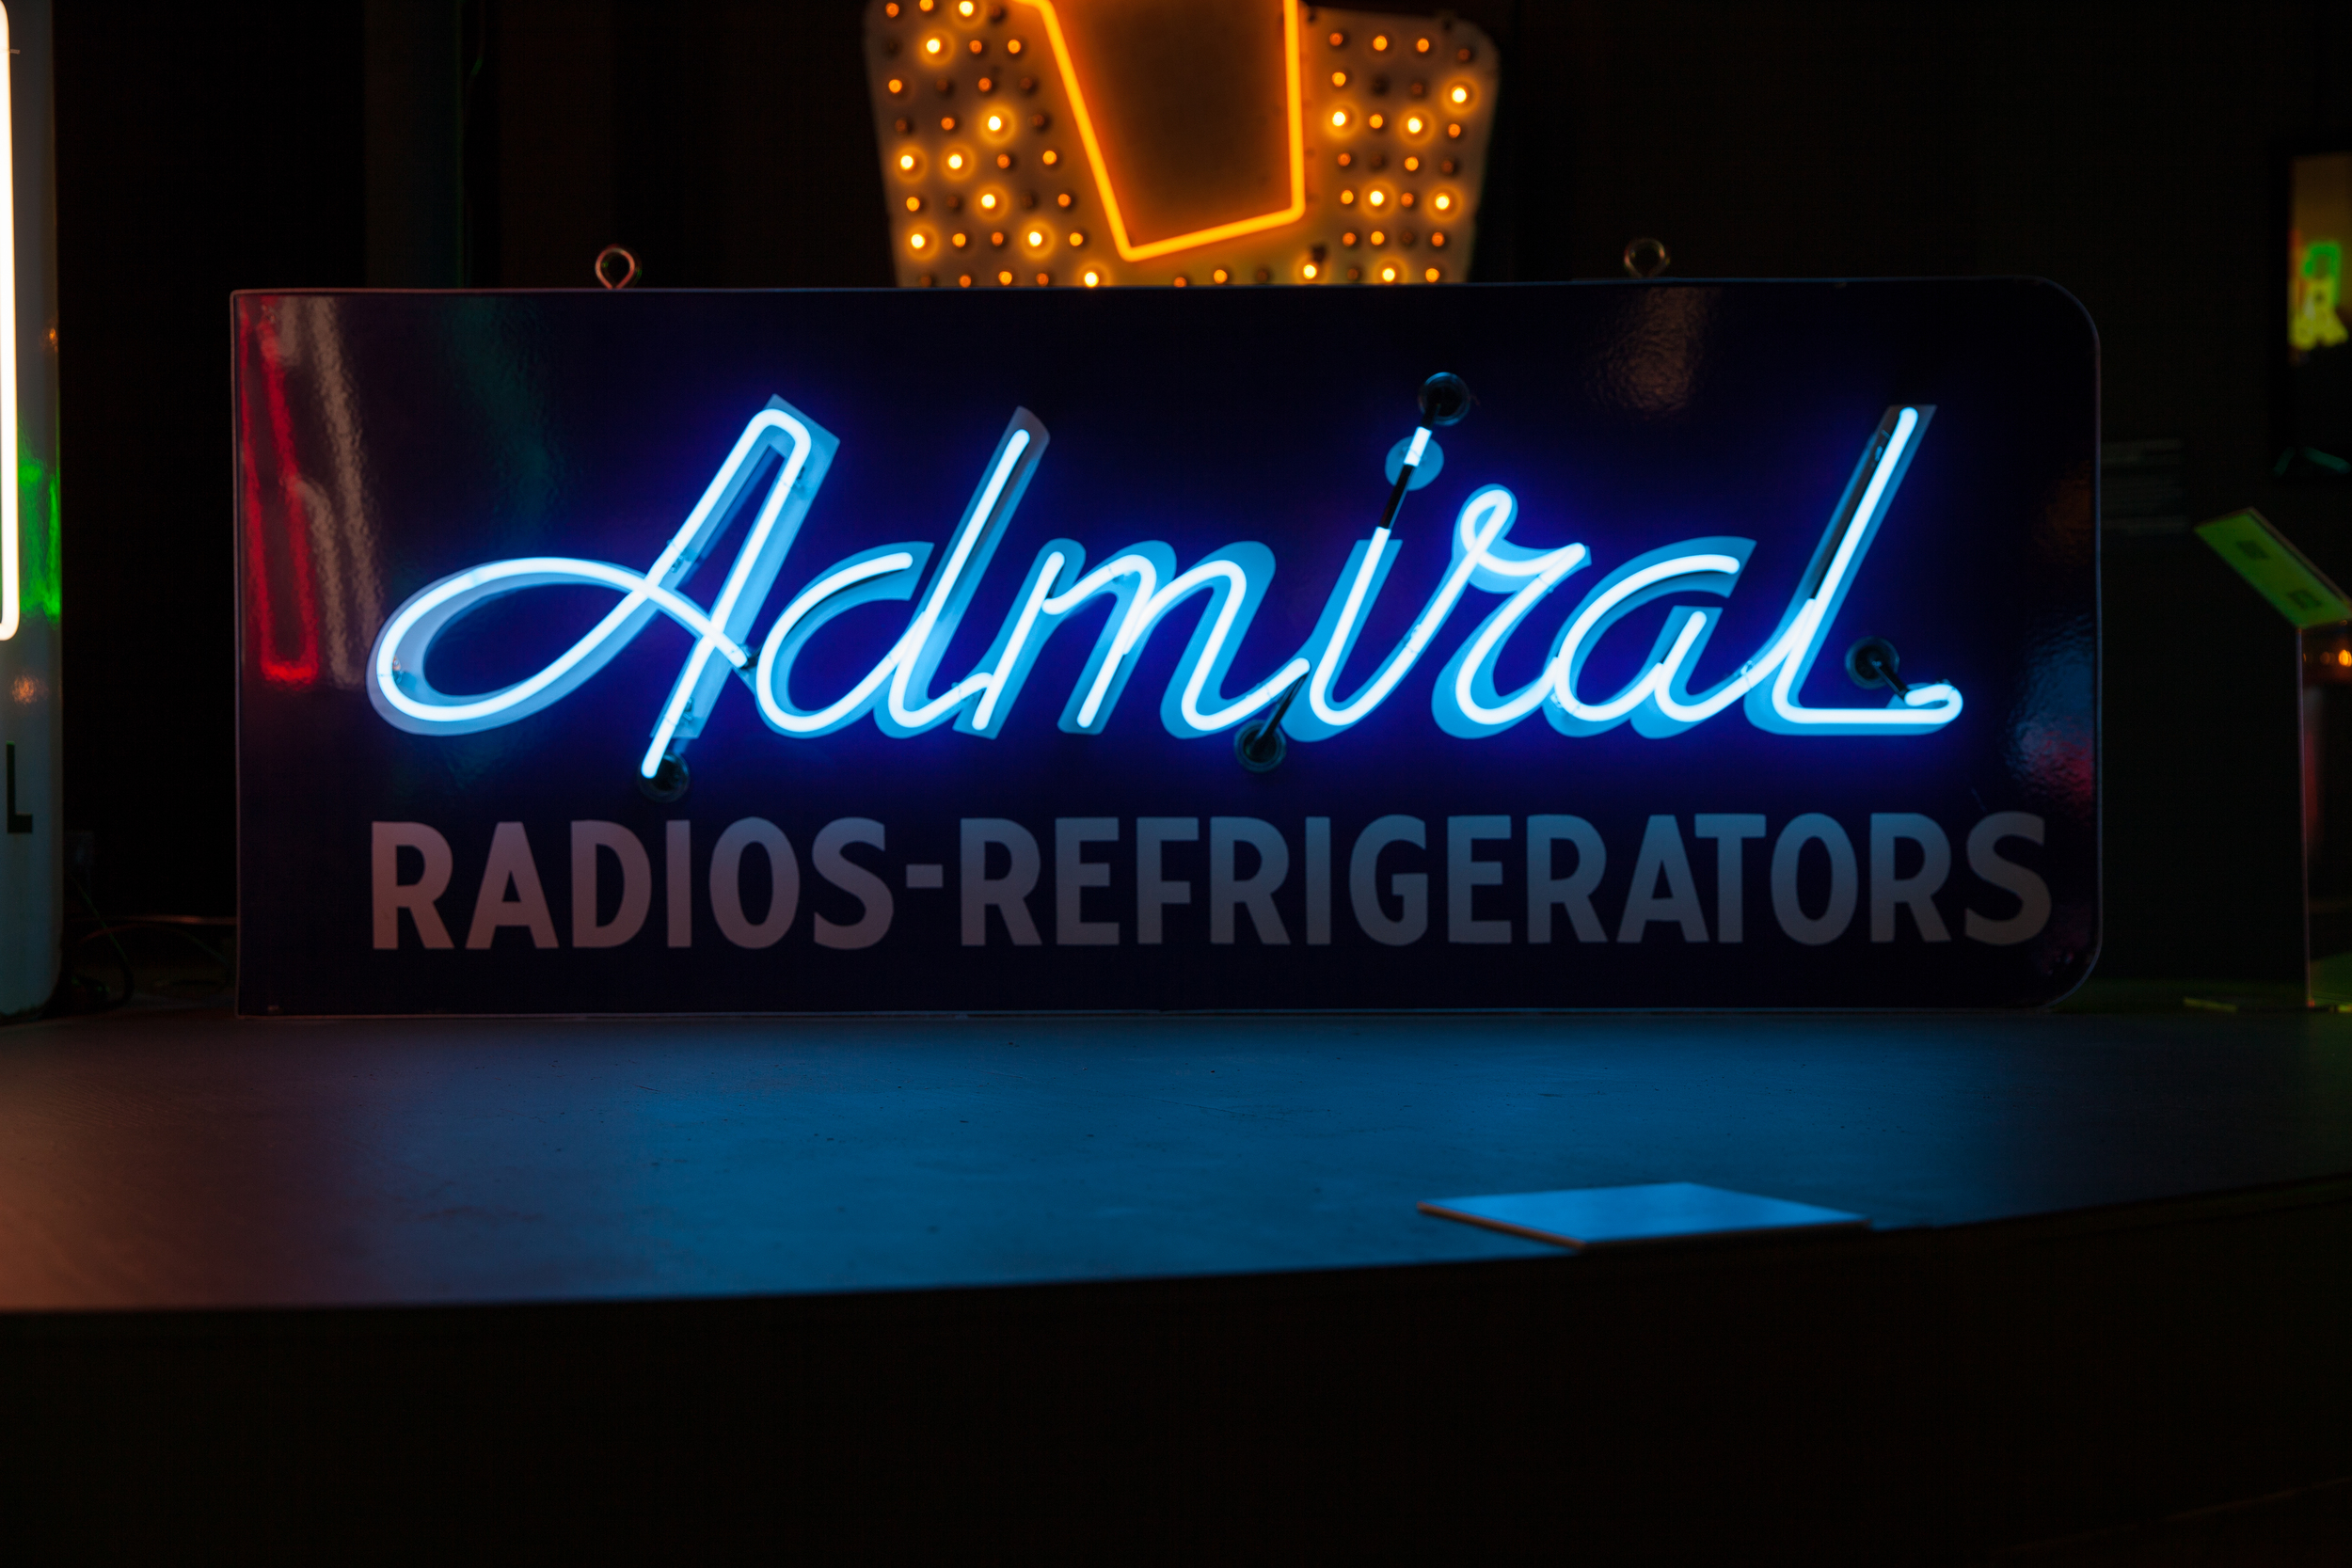 Admiral Radios and Refrigerators Porcelain Enamel and Neon Sign.